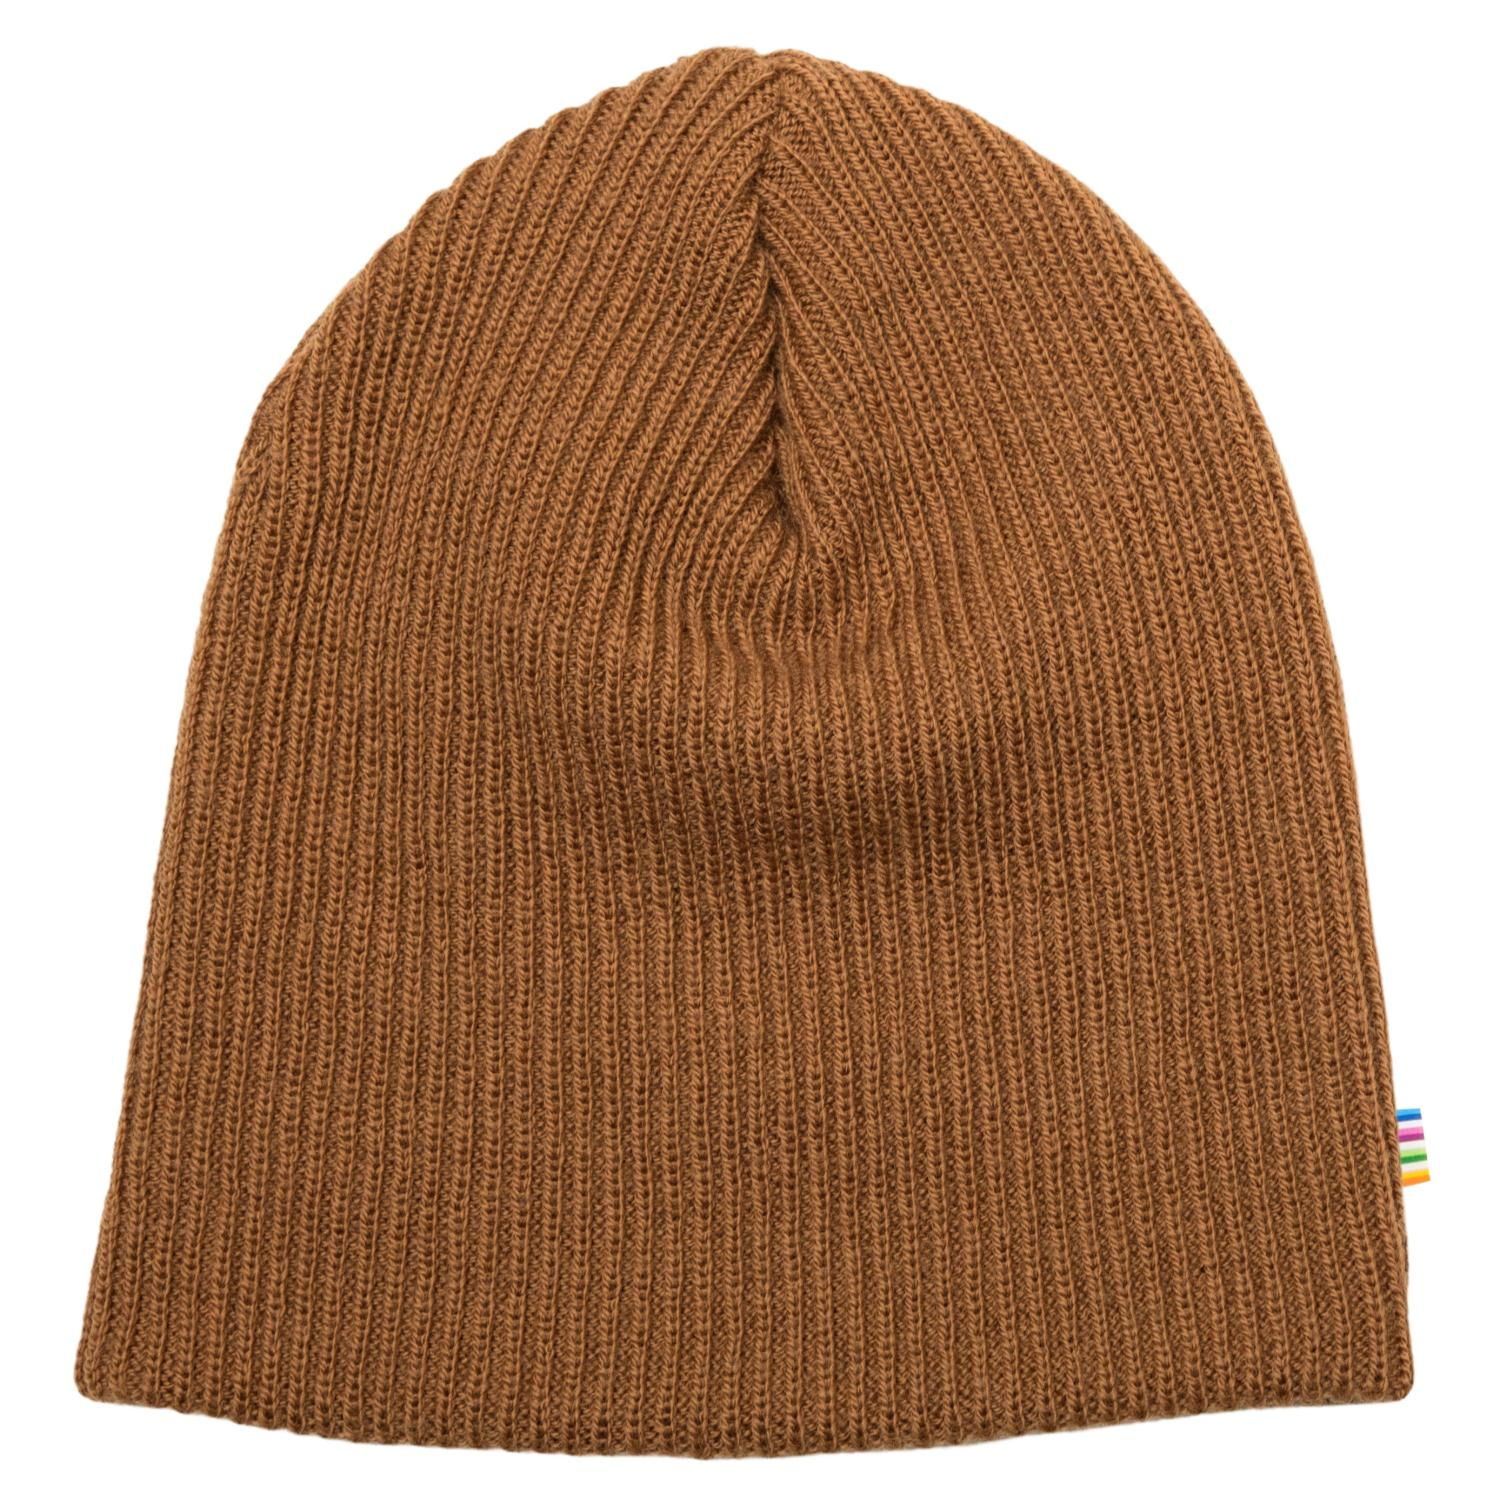 Hat, double layer